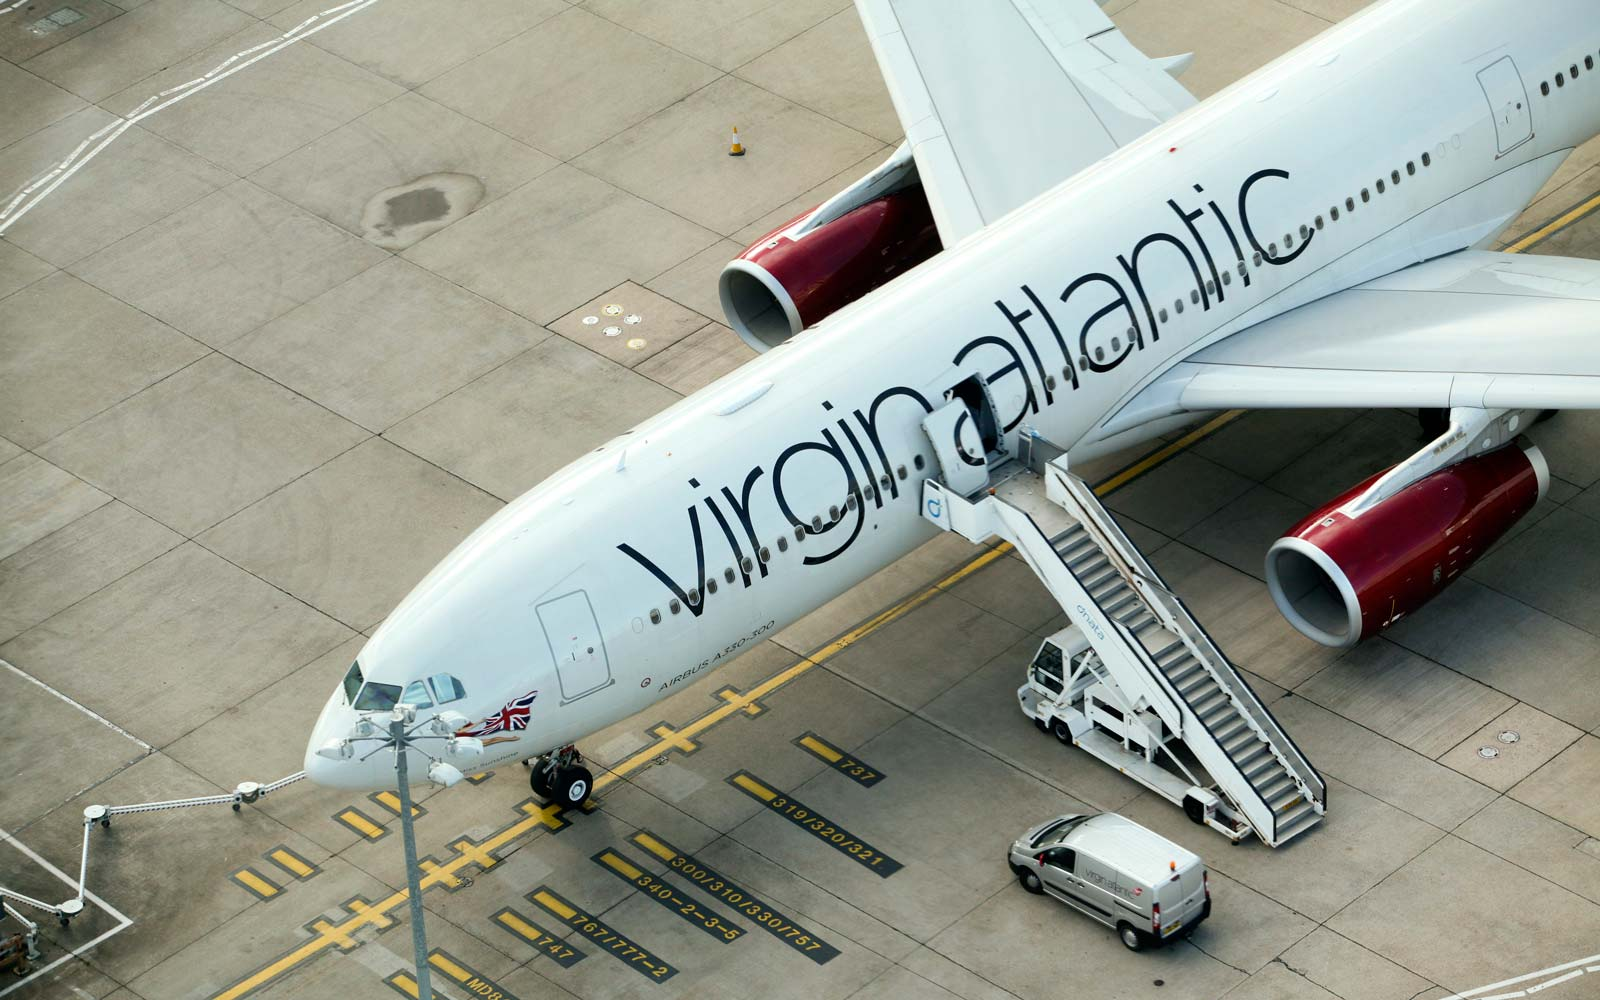 Virgin Atlantic Airbus at Heathrow Airport